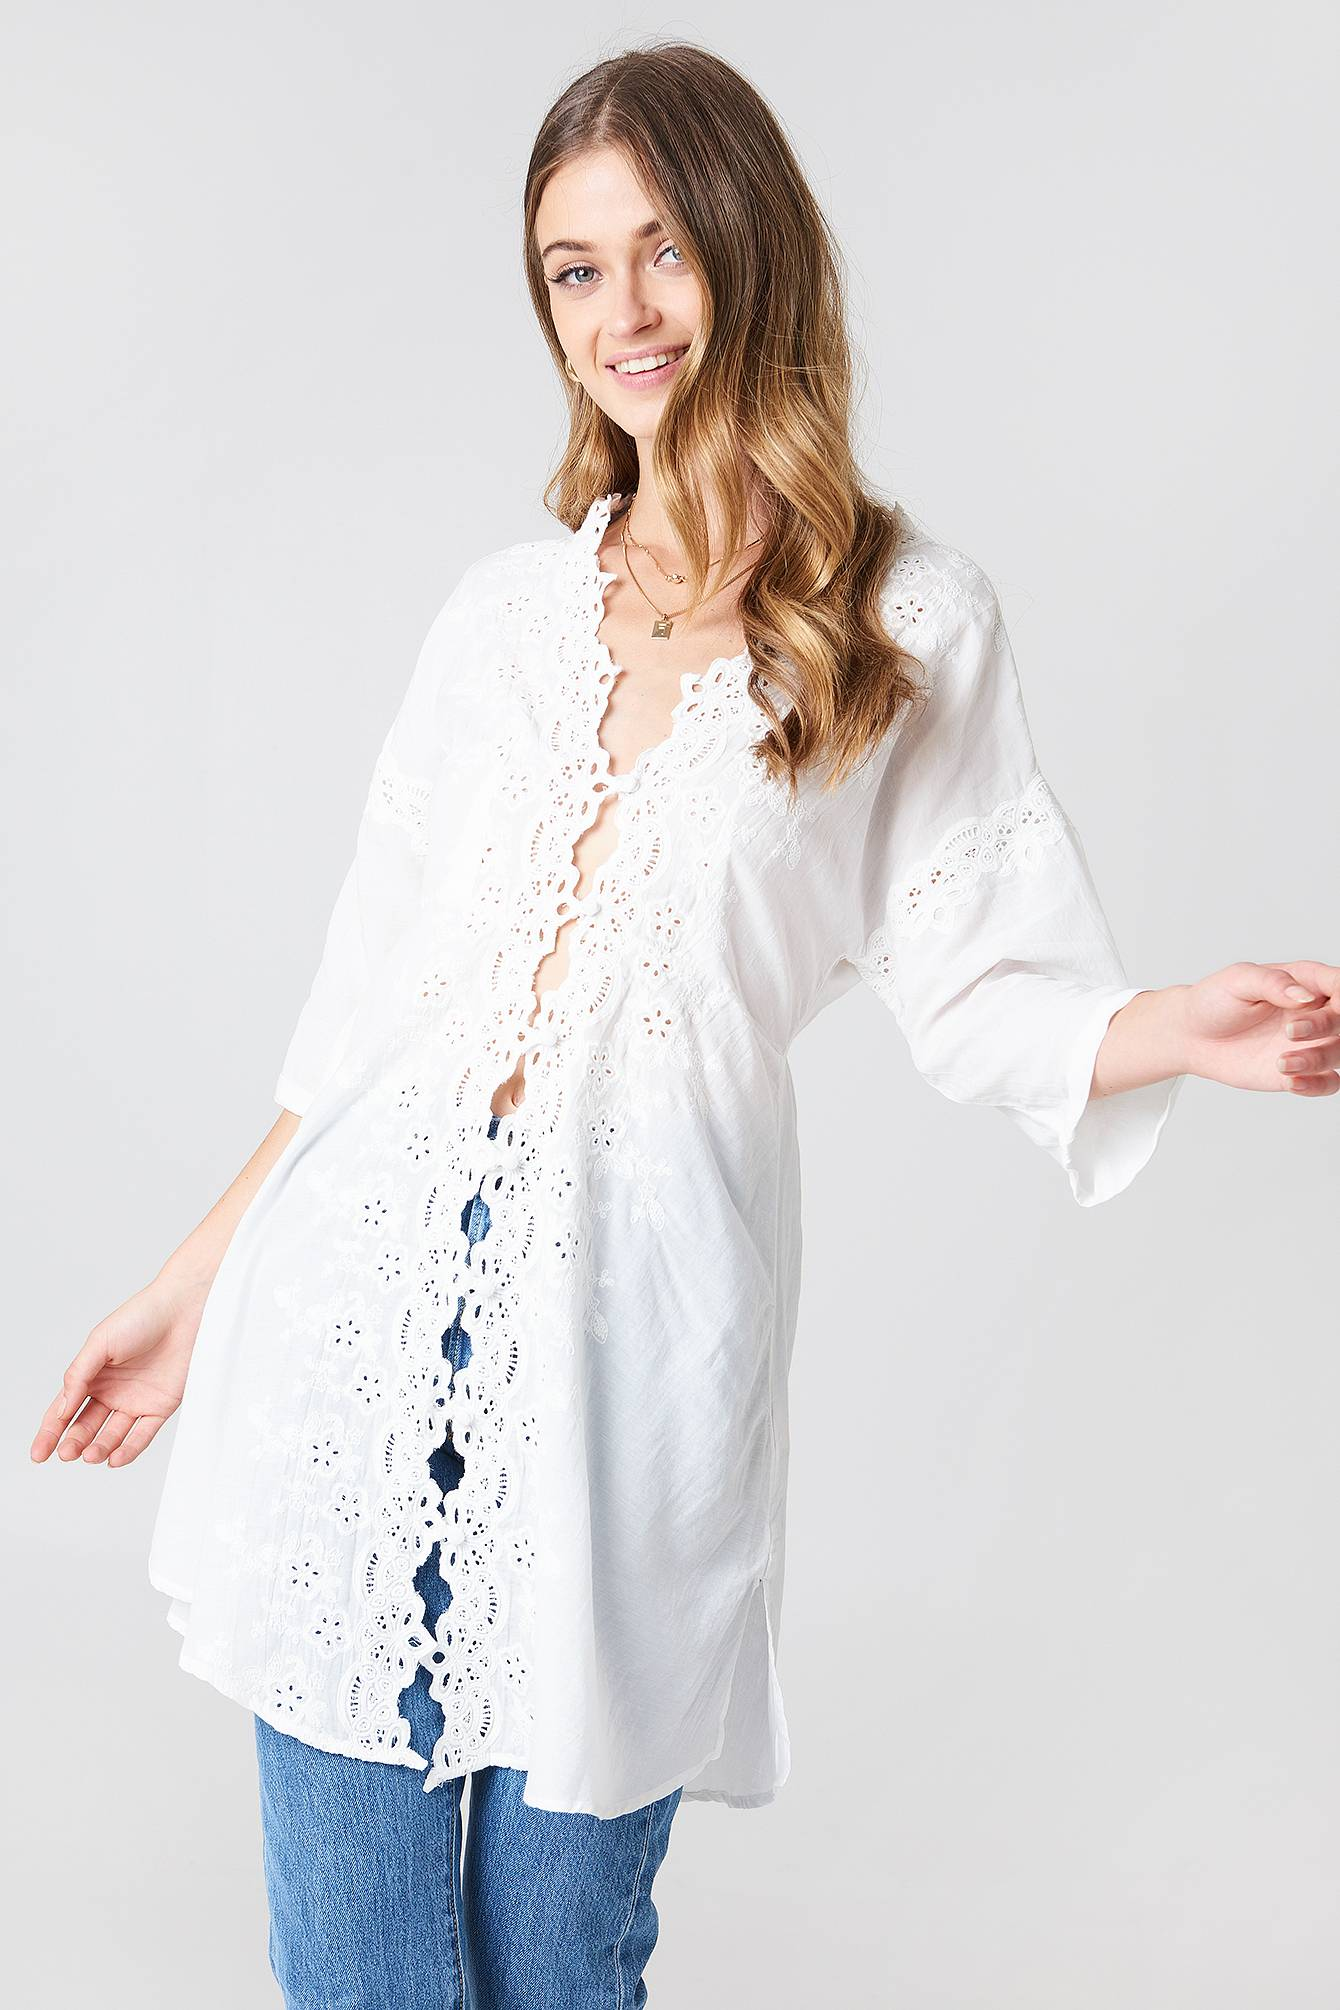 Free People To The Moon Buttondown Shirt - White